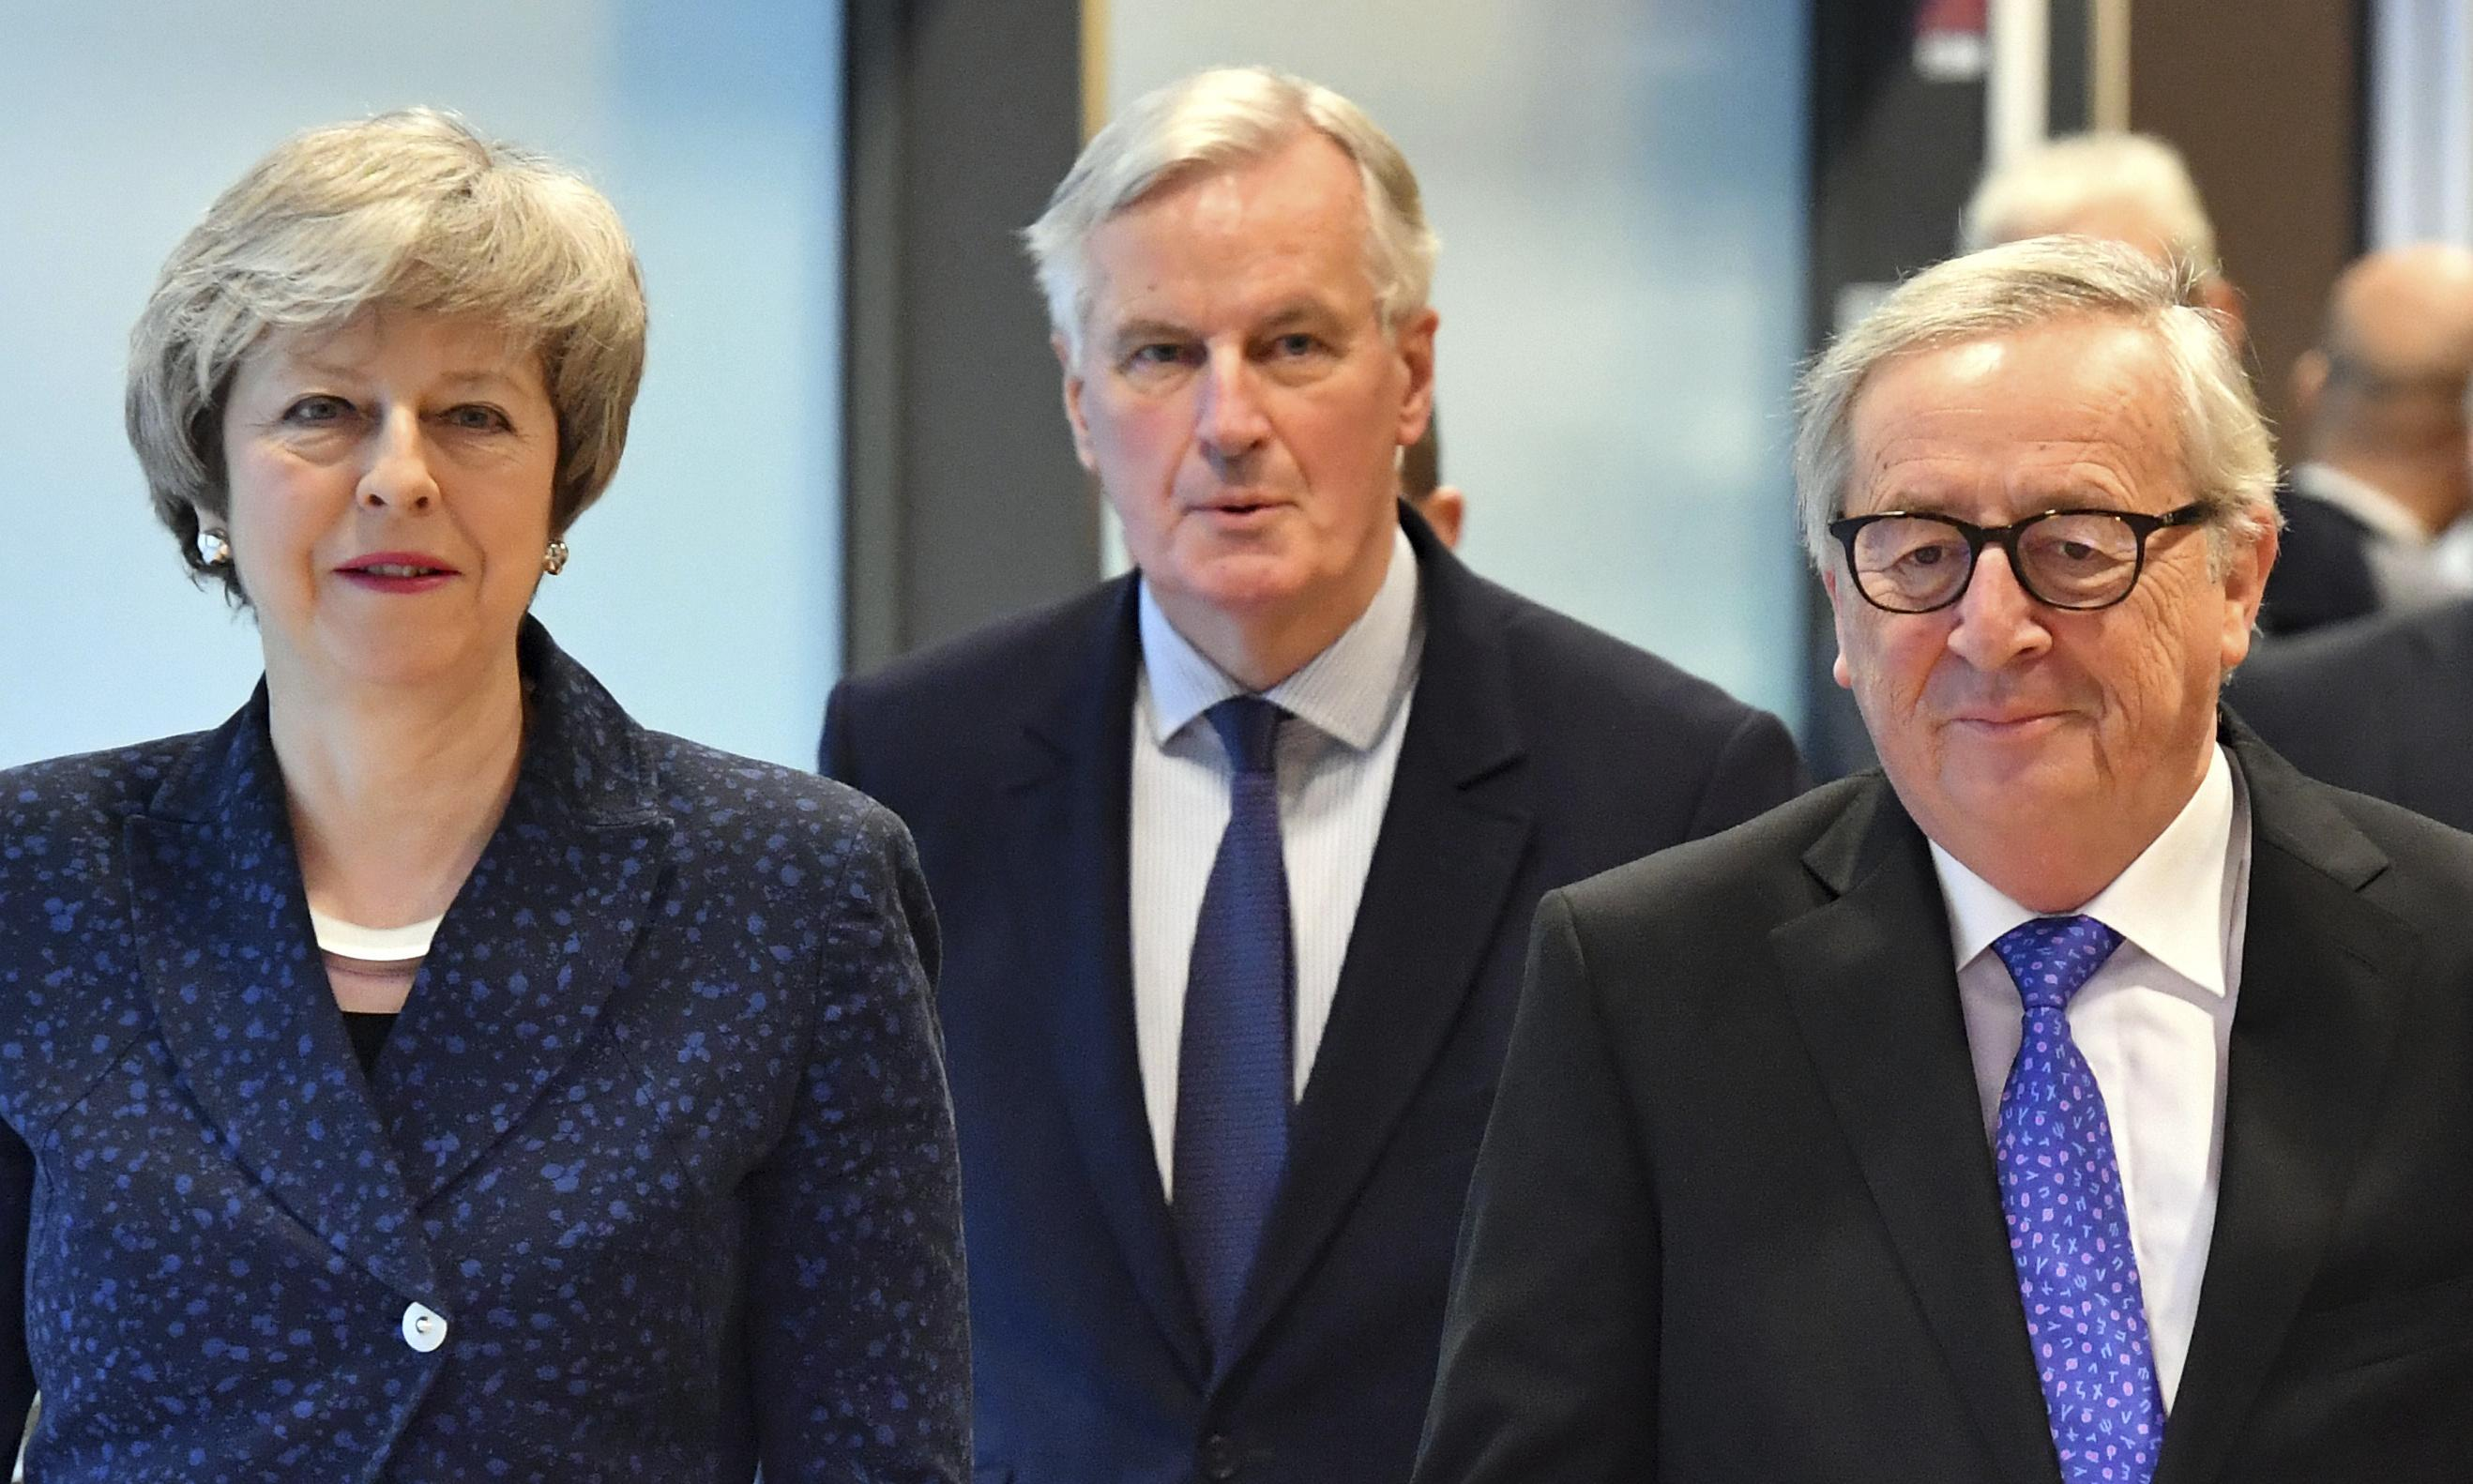 Michel Barnier says there is high chance of 'accidental' no-deal Brexit